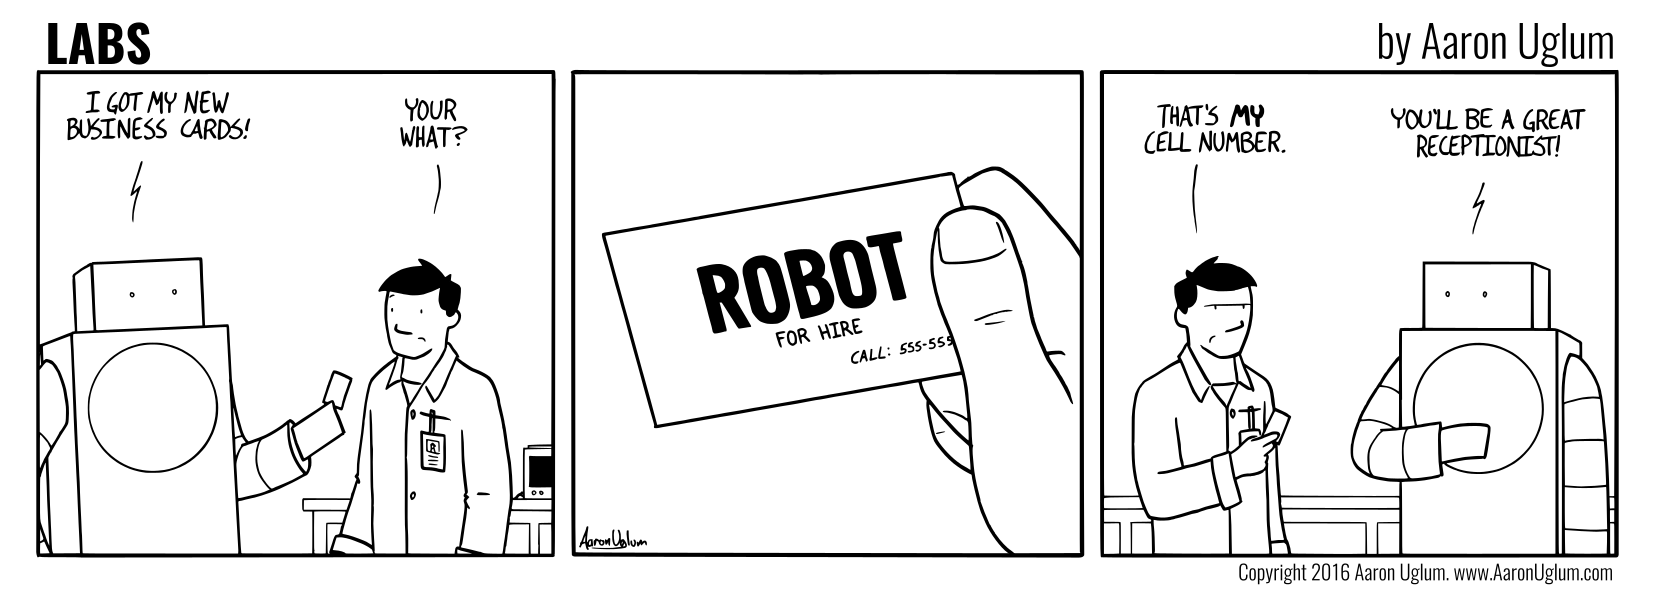 LABS 09/10/16 - The Robot's Business Cards